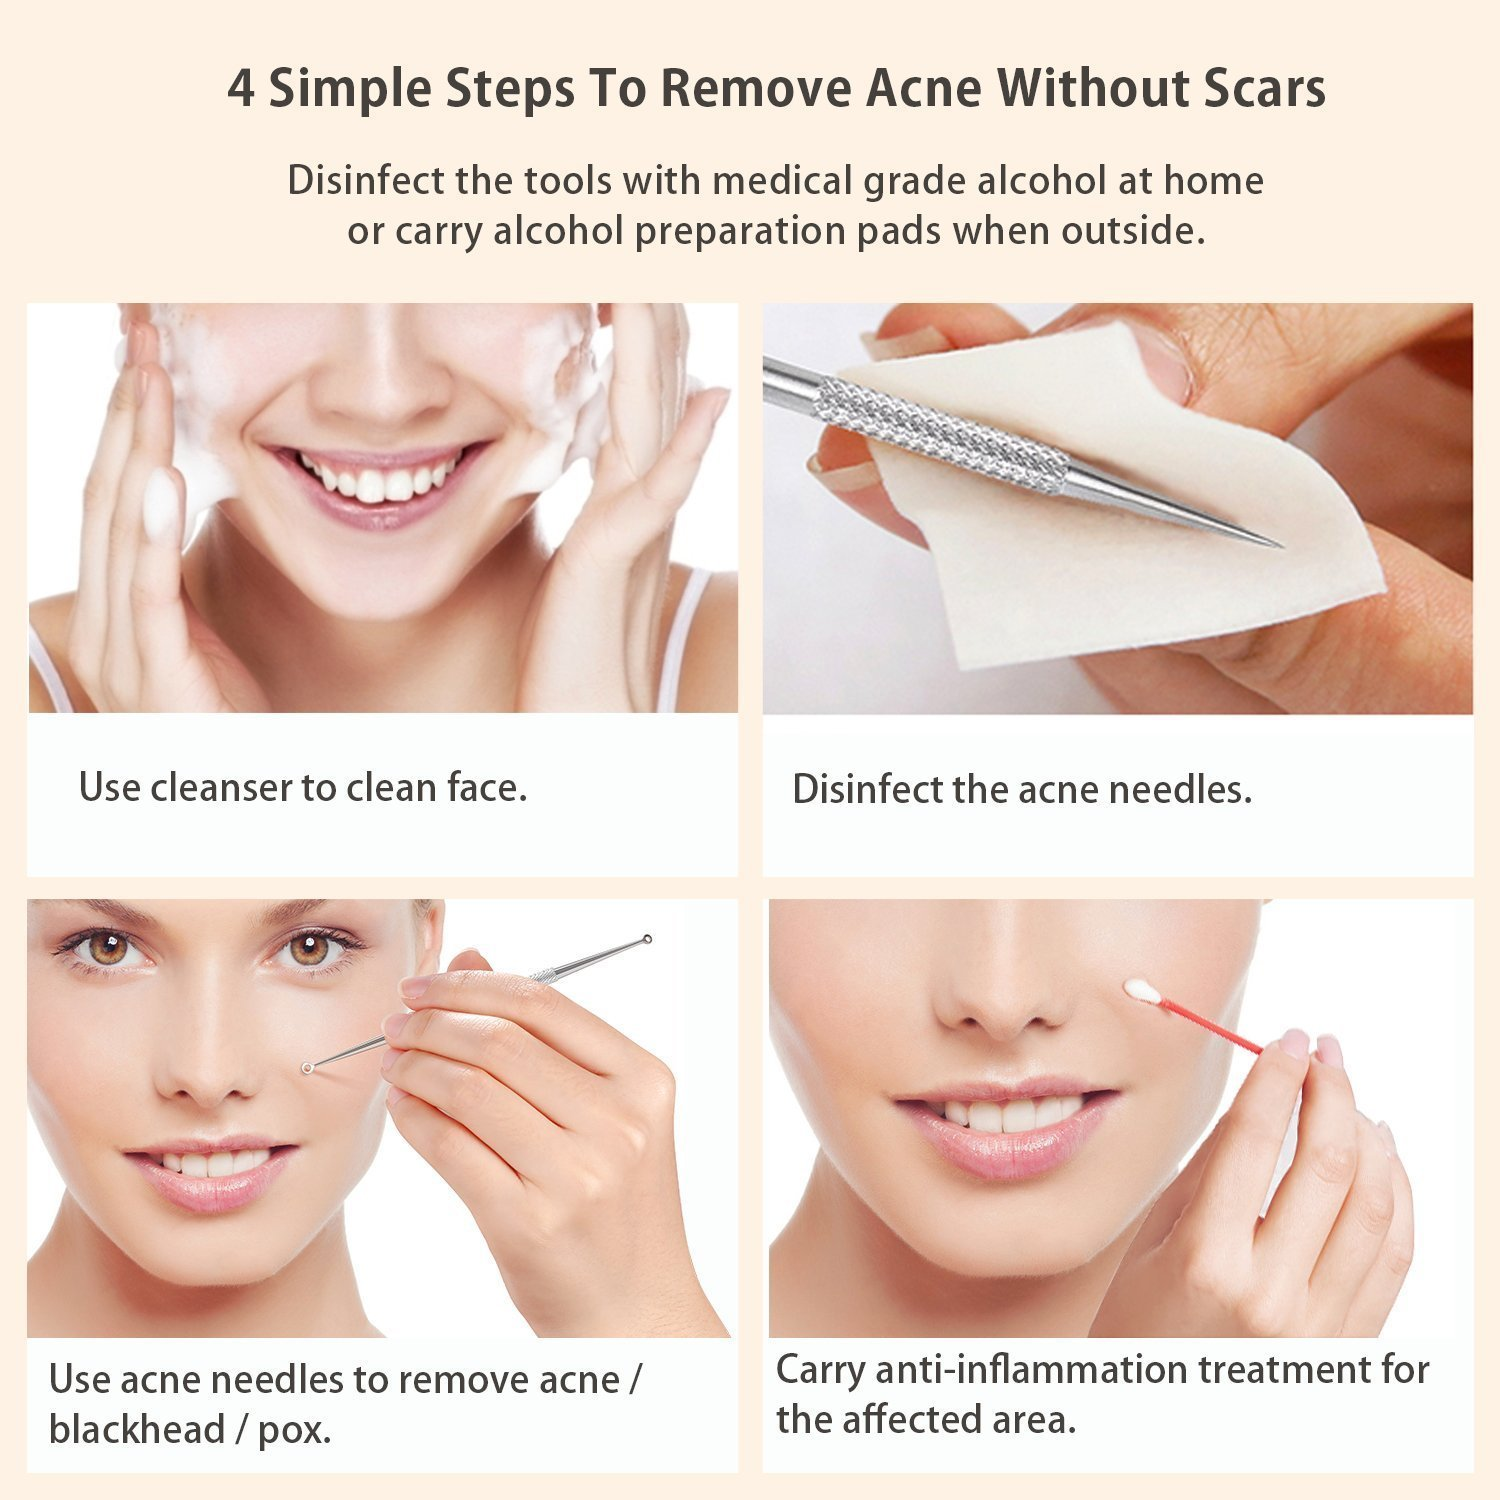 How to Use an Acne Tool